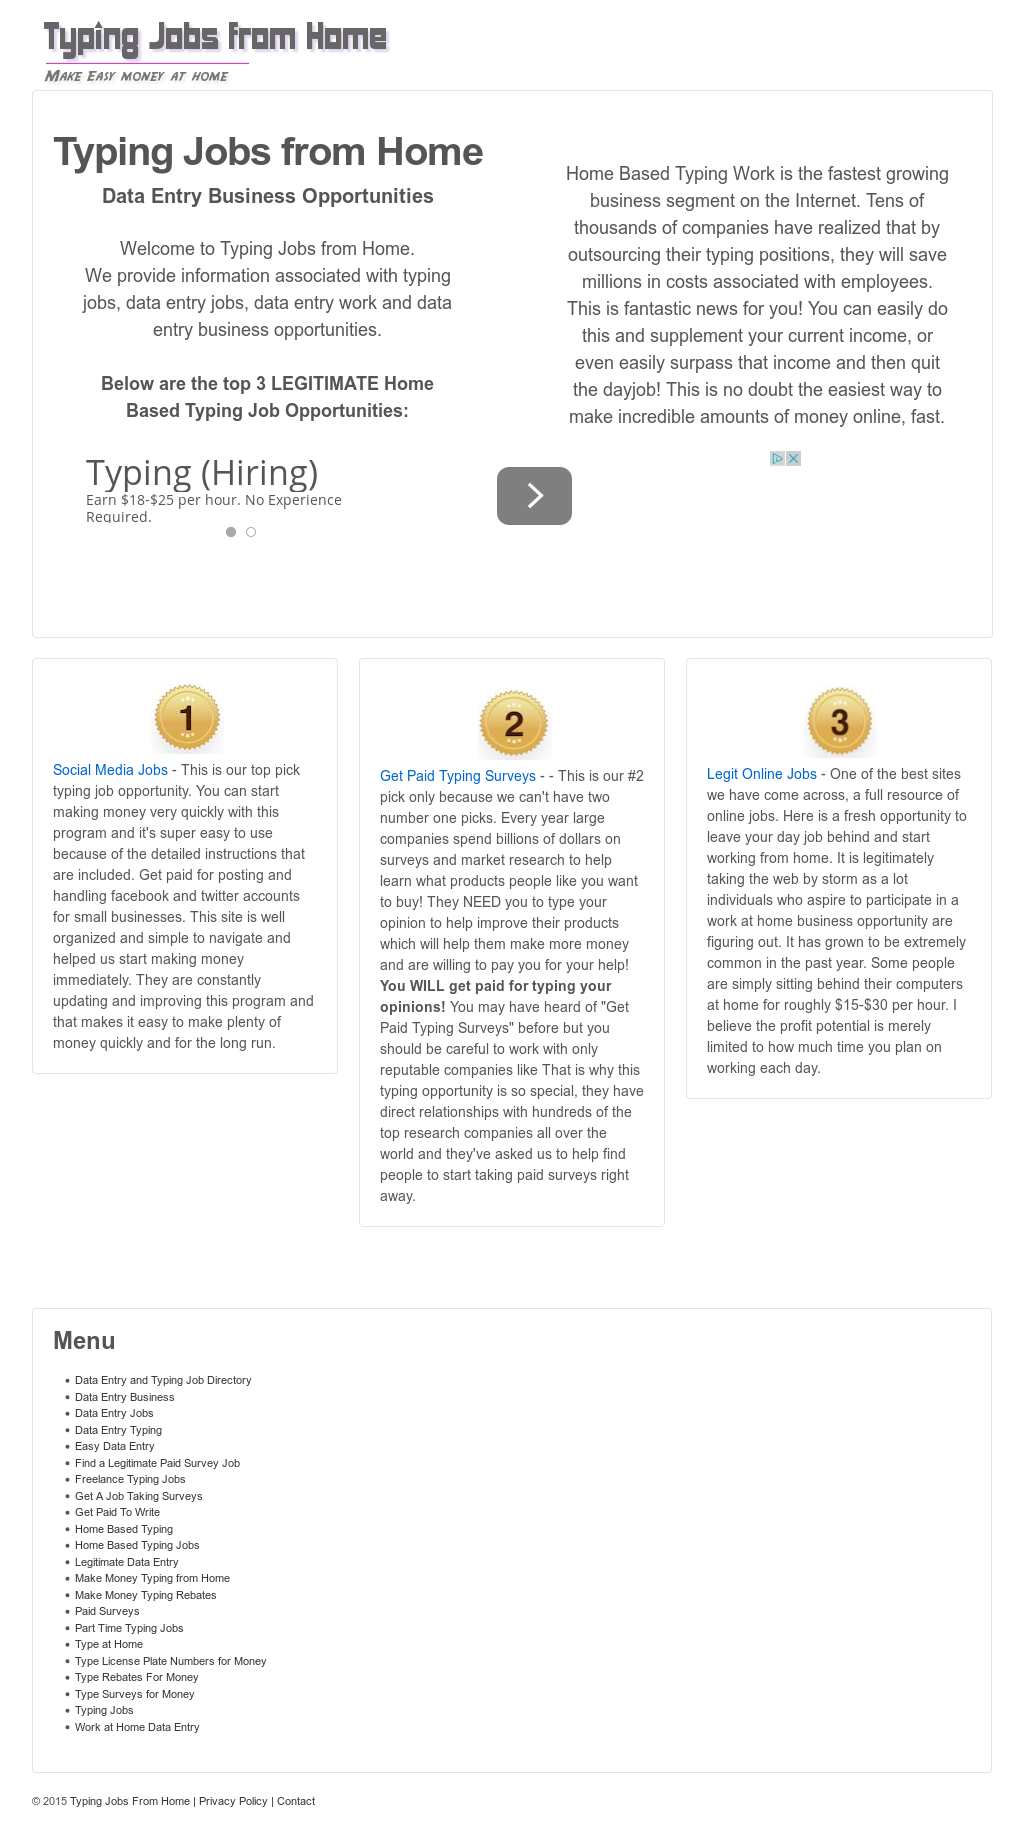 Typing Jobs From Home Competitors, Revenue and Employees